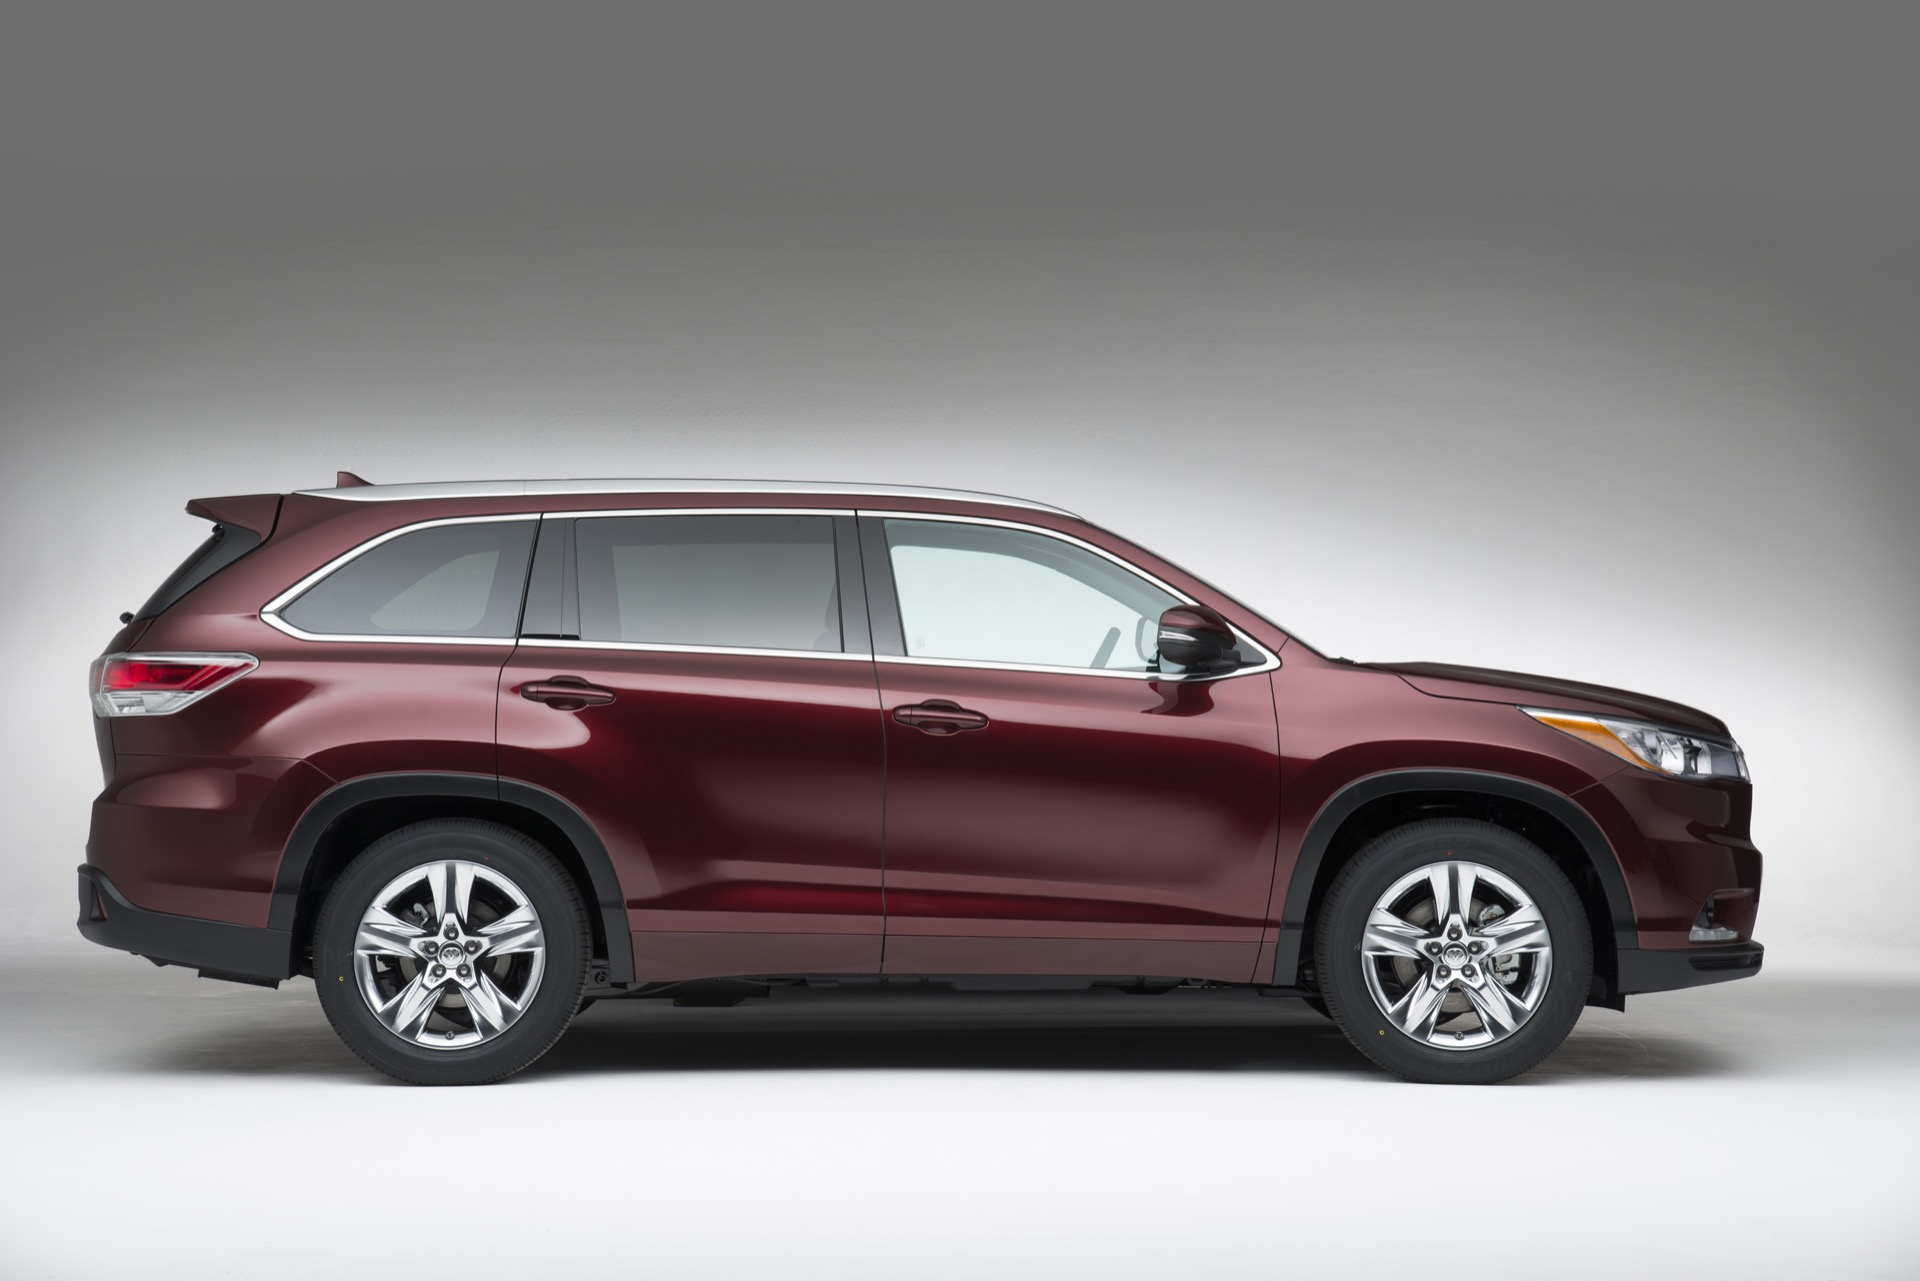 2016 Toyota Highlander Safety Review And Crash Test